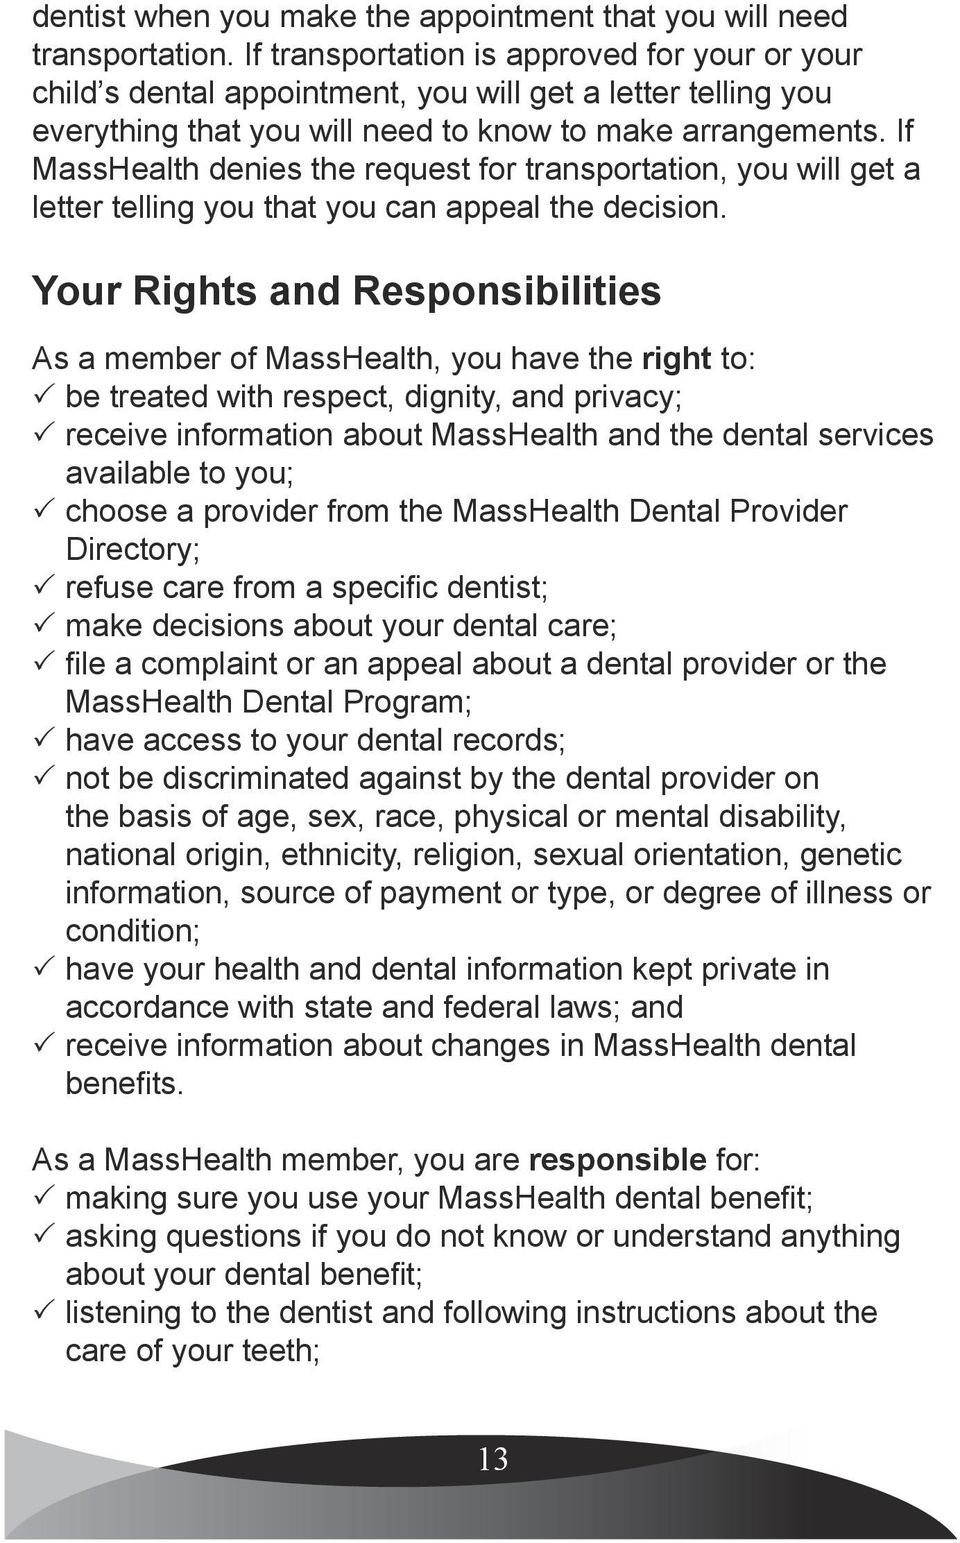 If MassHealth denies the request for transportation, you will get a letter telling you that you can appeal the decision.